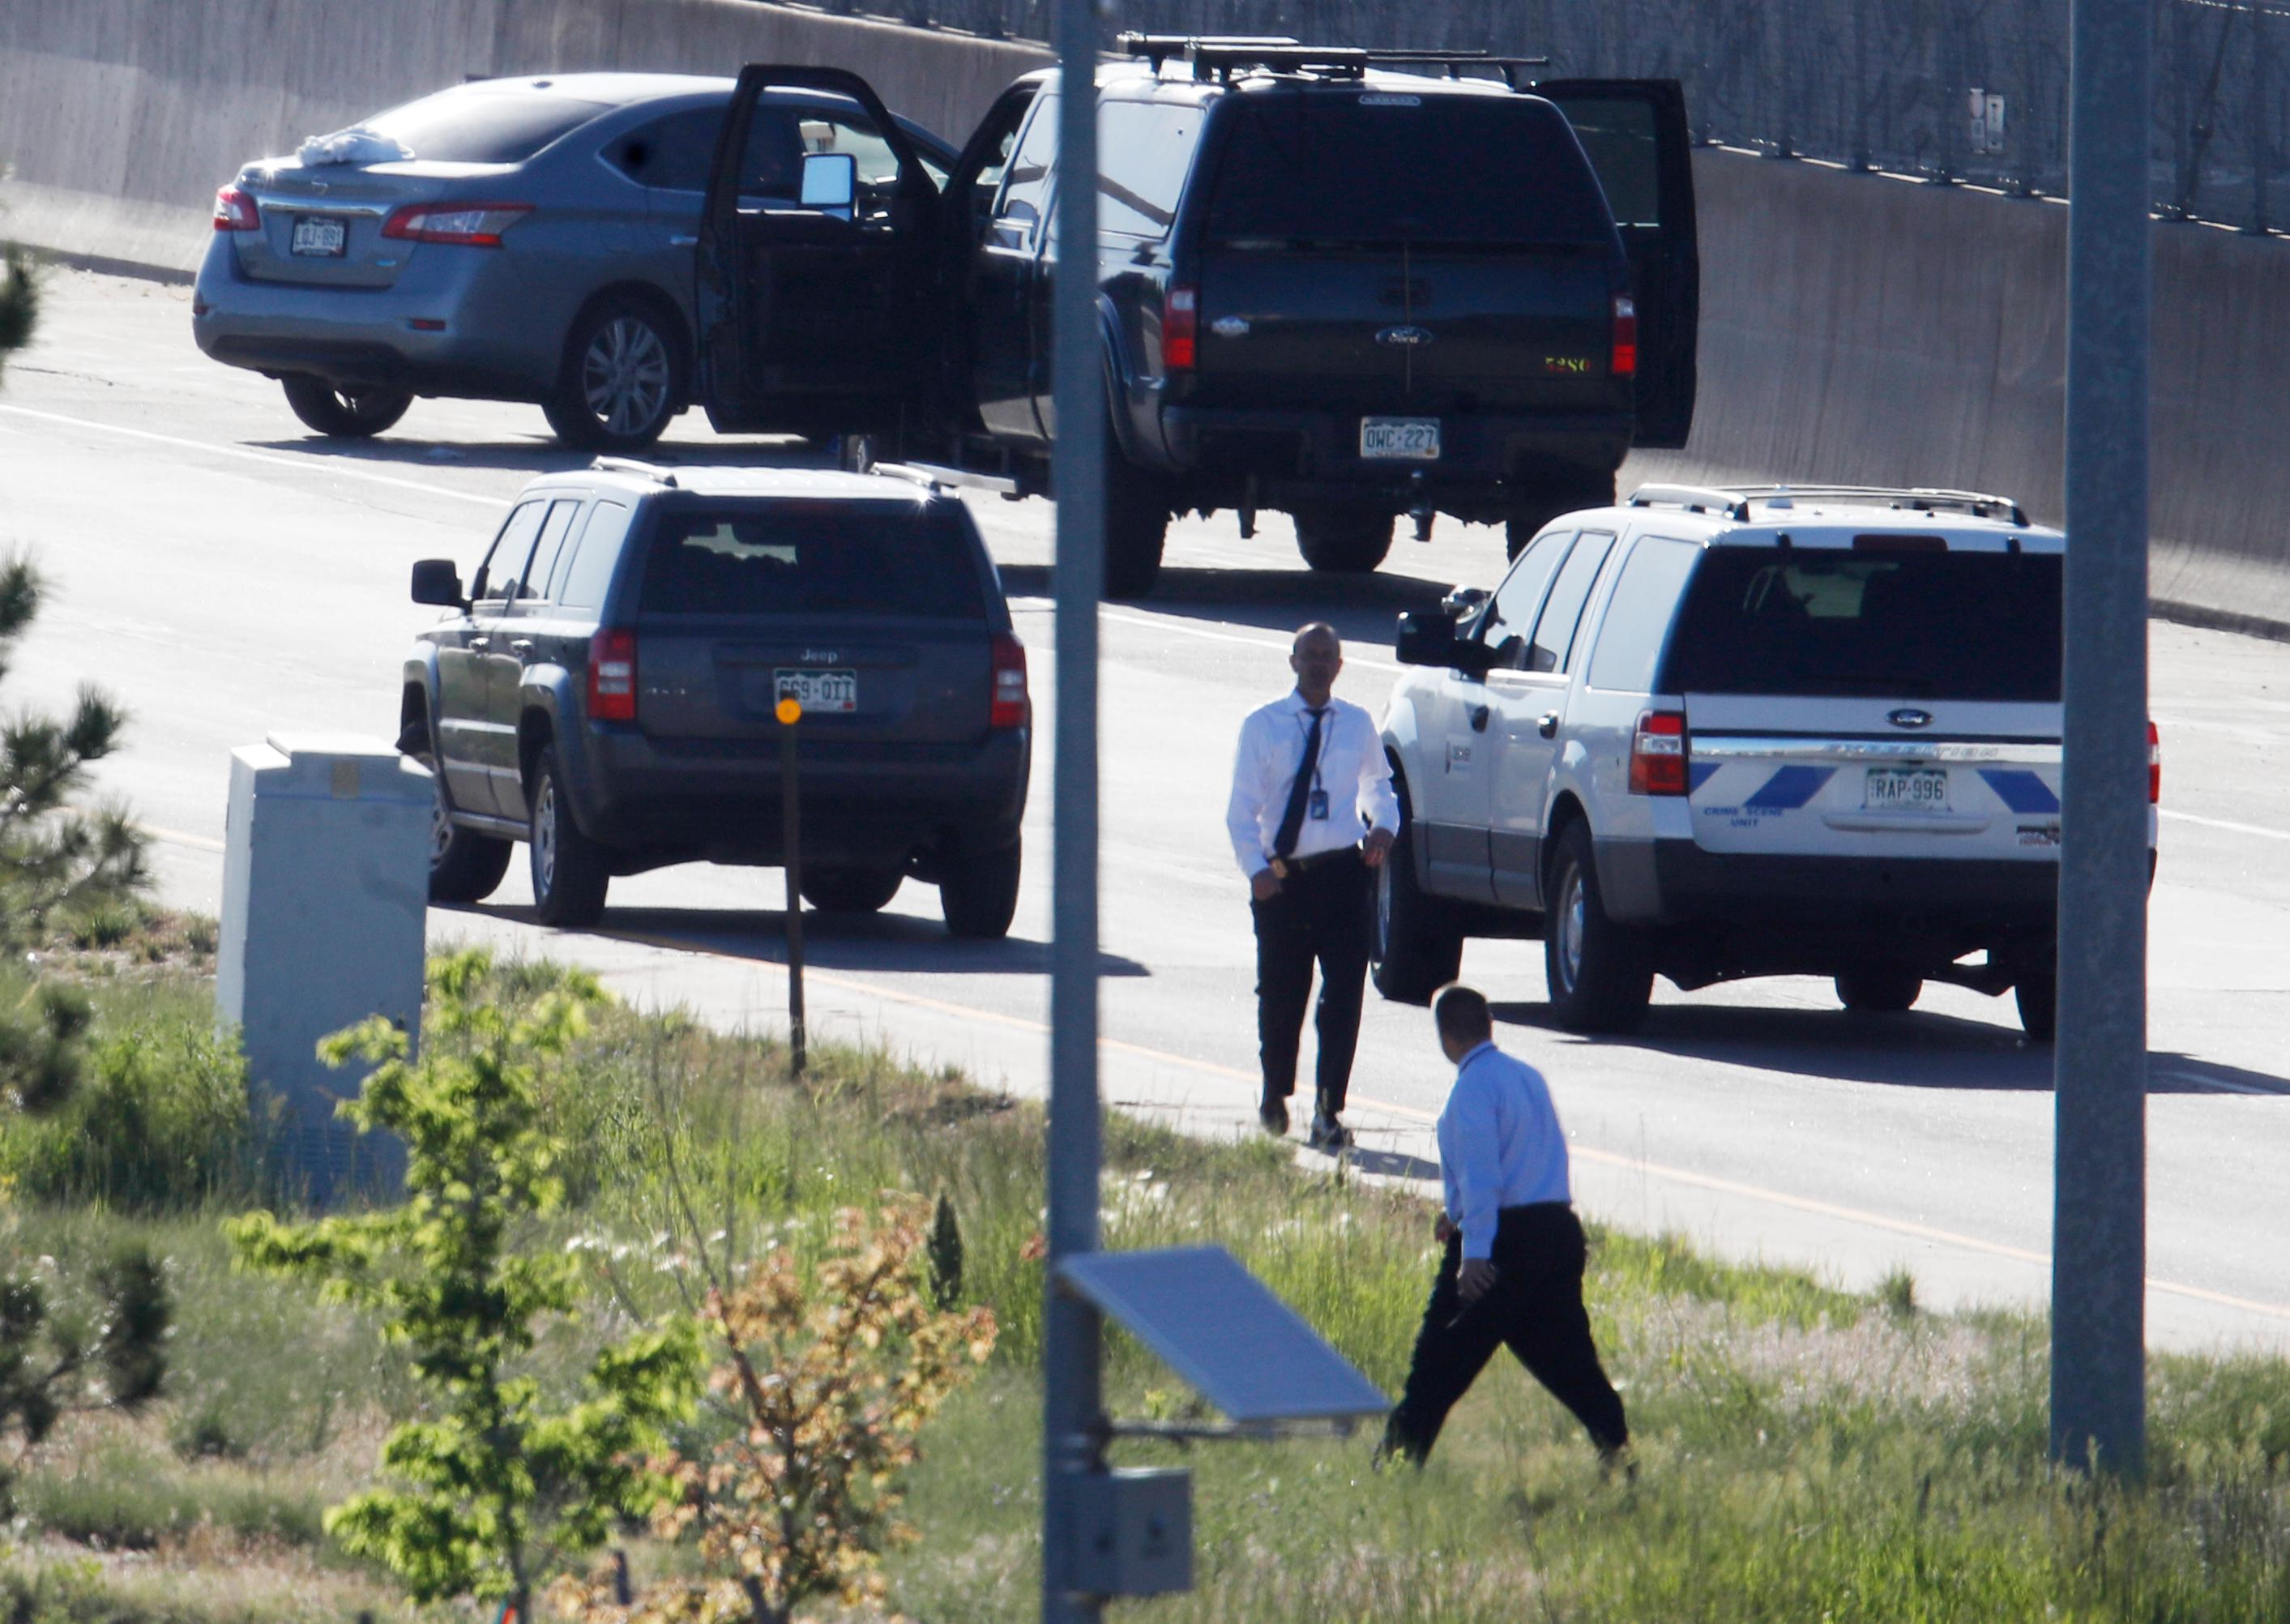 Denver Police Department detectives, foreground, investigate near where a Nissan sedan, top left, being driven by an Uber driver crashed into a retaining wall along Interstate 25 south of downtown Denver early Friday, June 1, 2018. (AP Photo/David Zalubowski)